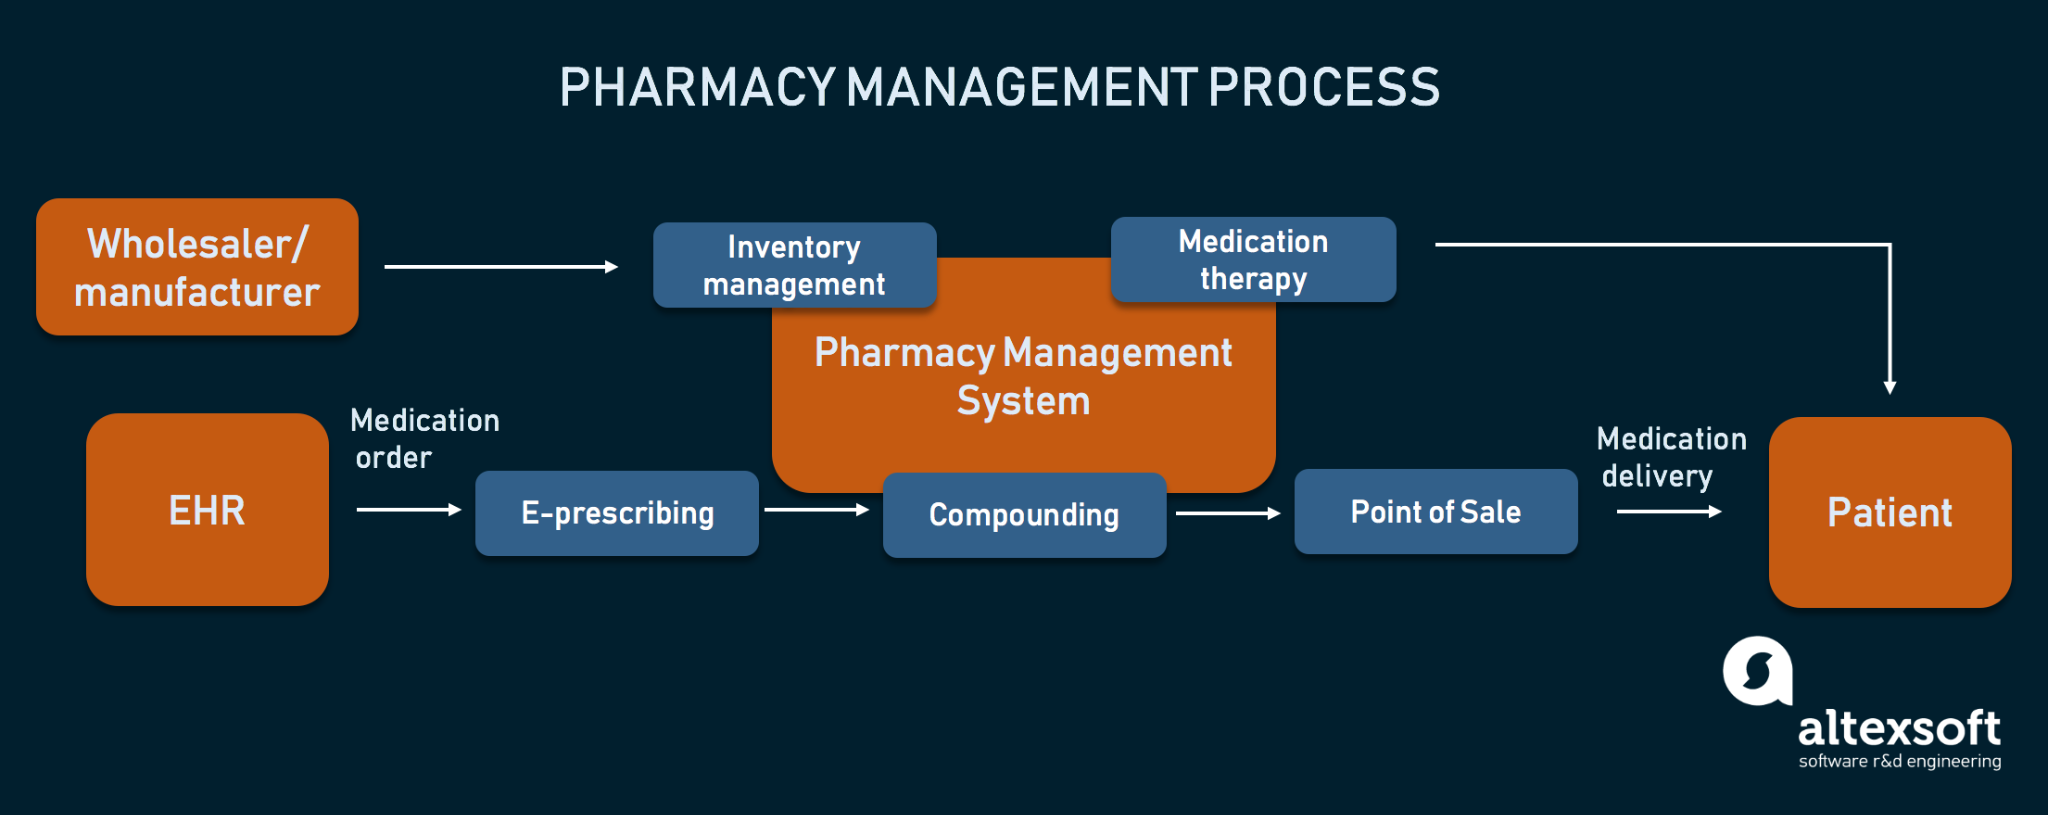 Main processes and parties in pharmacy management